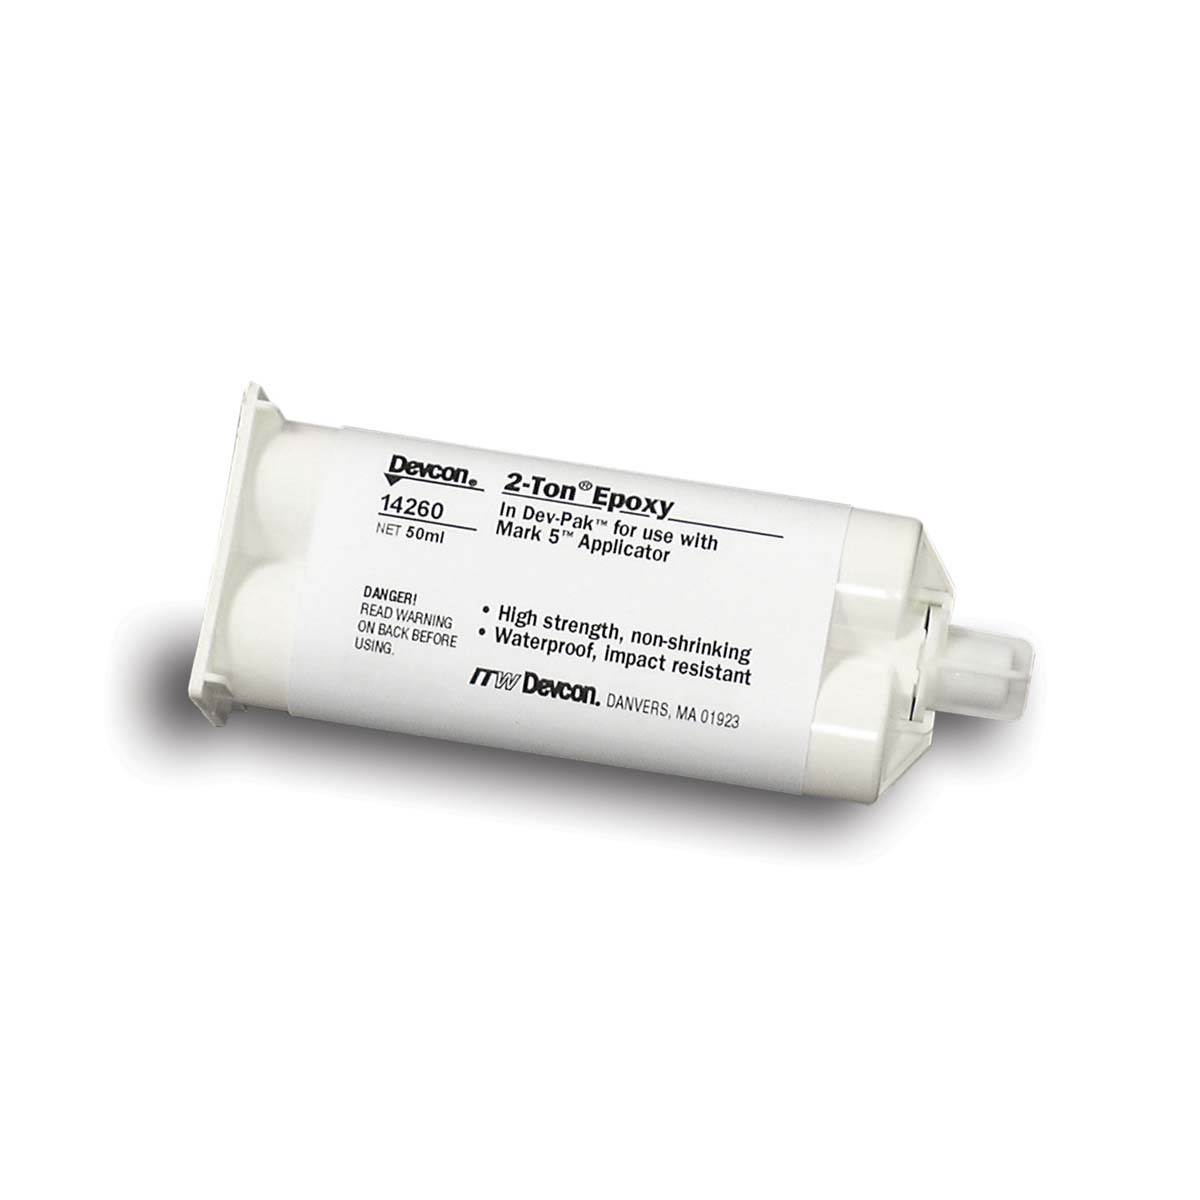 DEVCON® 2 Ton® Epoxy    clear [1-1] - 50 ml cartridge  1 Each